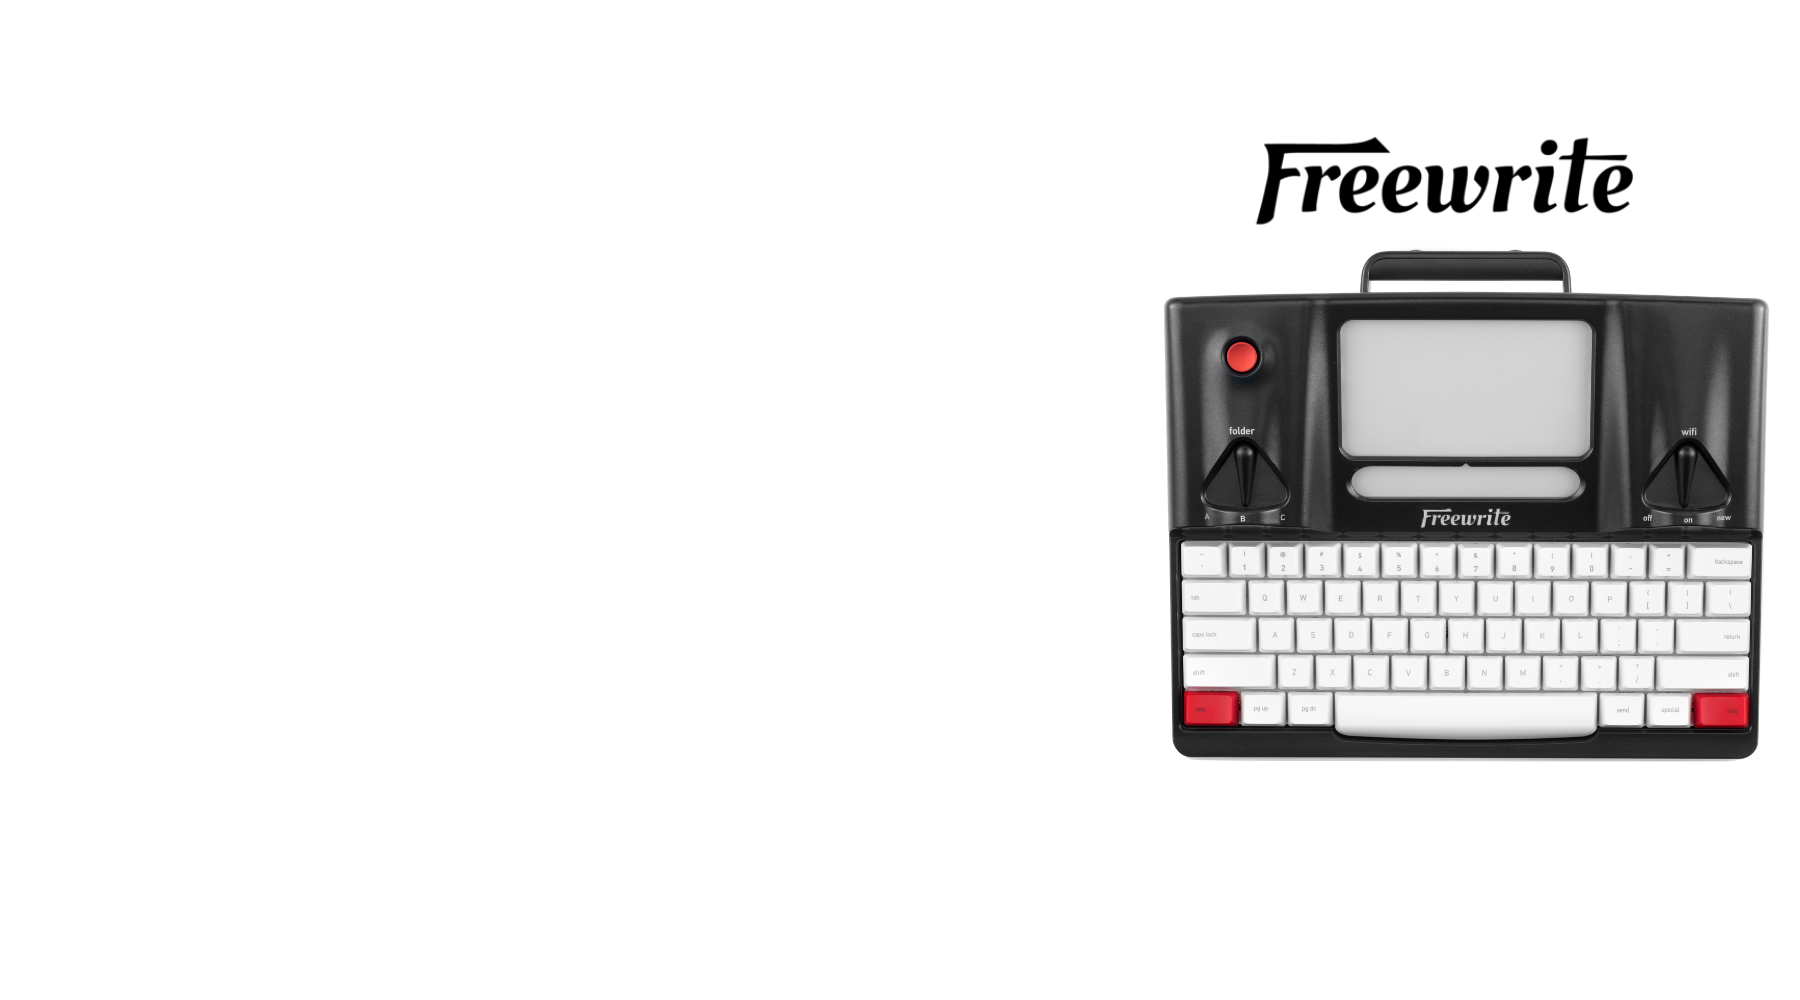 Freewrite is the solution to a distracted workflow